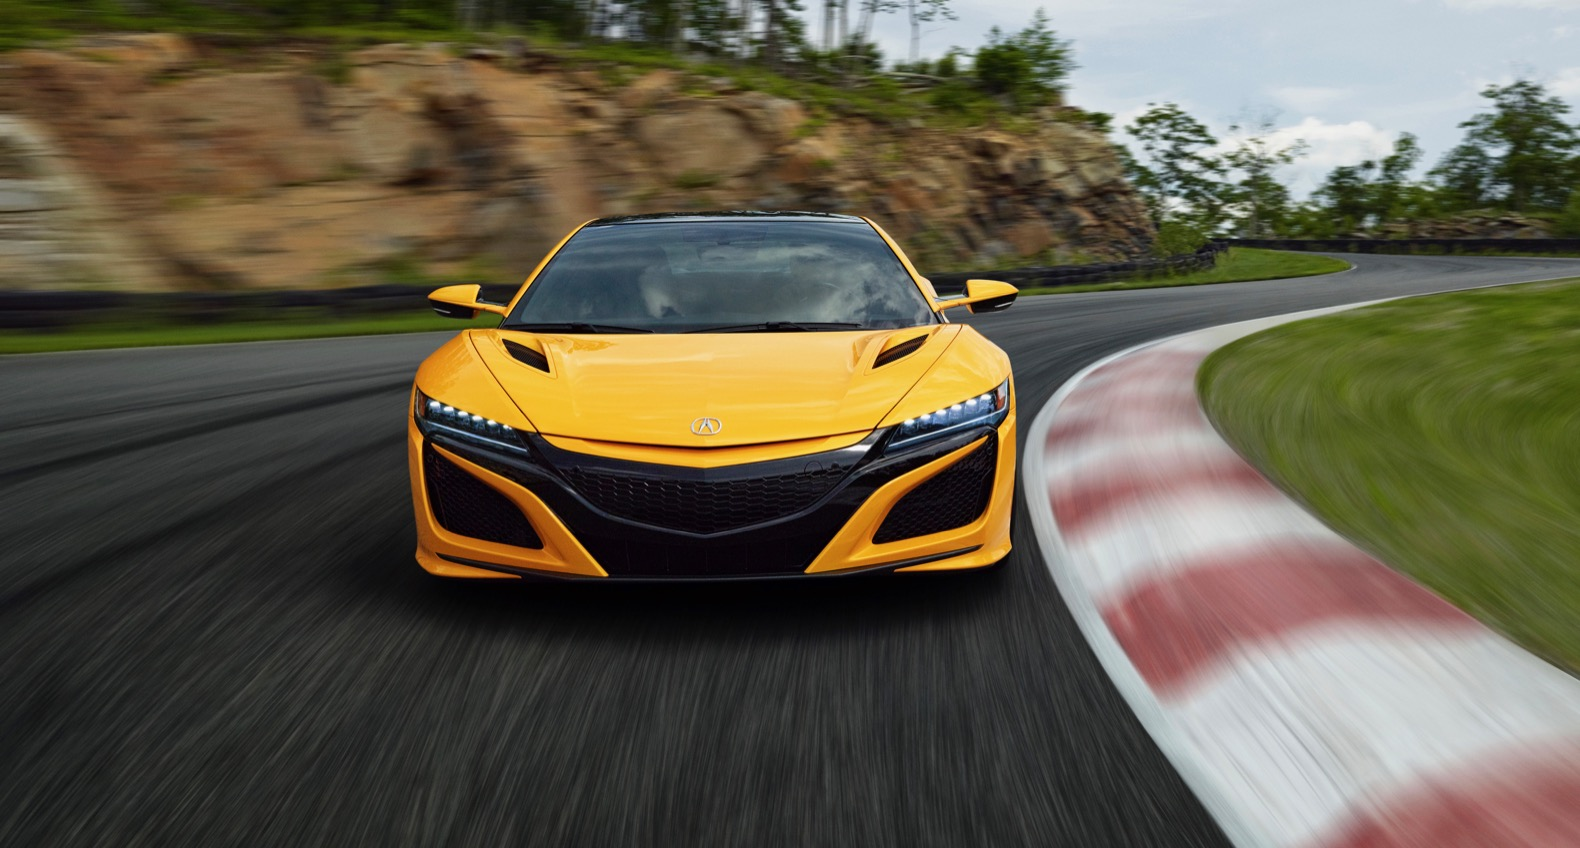 acura nsx type r and convertible to debut in 2021? | the